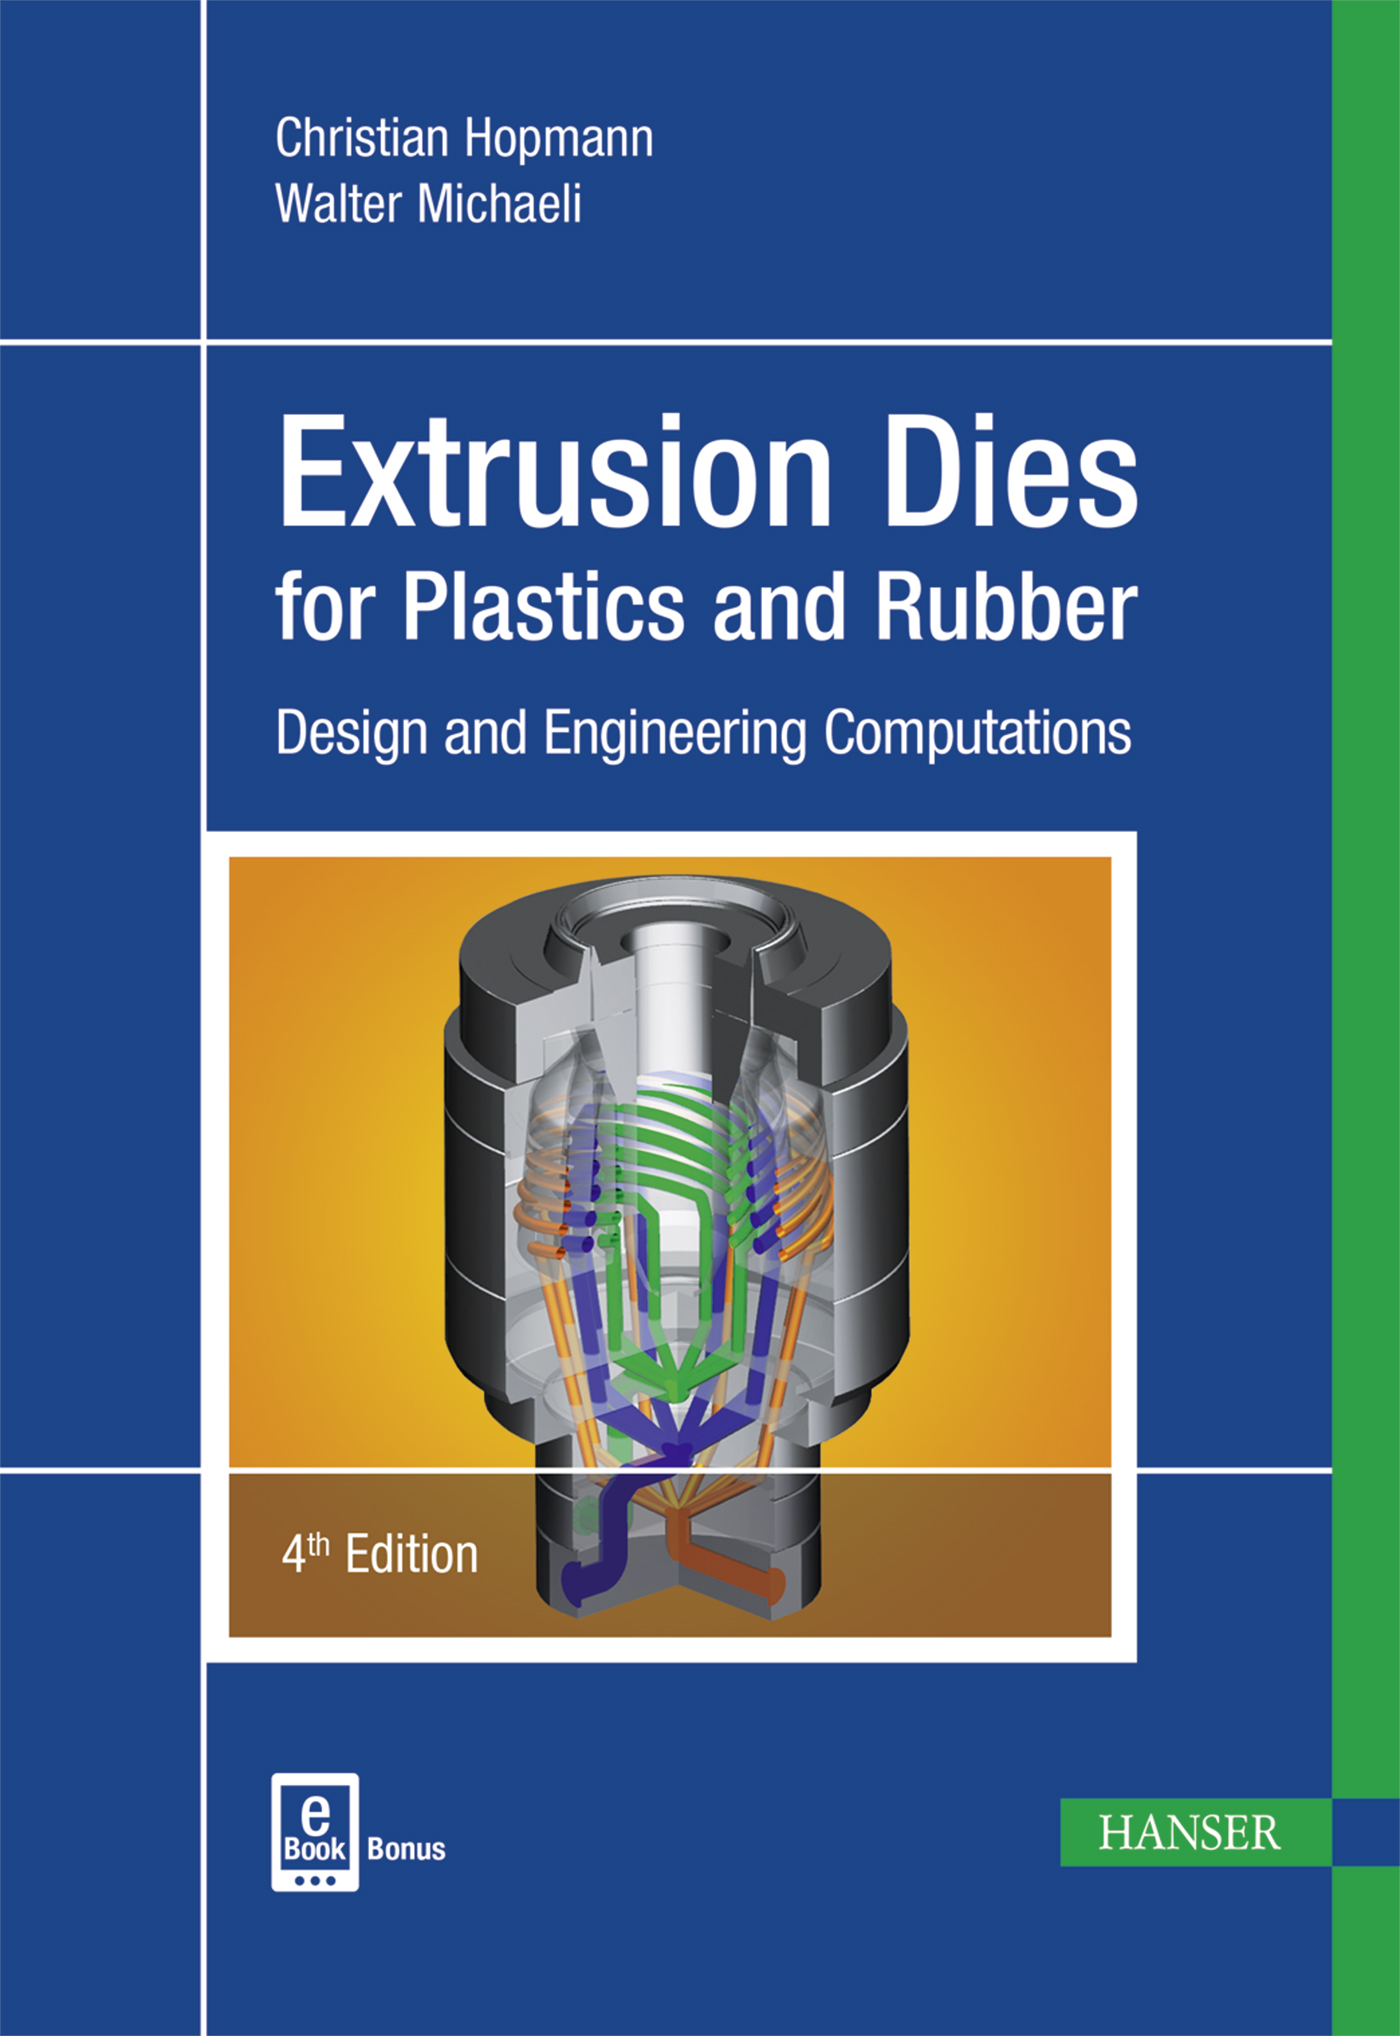 Hopmann, Michaeli, Extrusion Dies for Plastics and Rubber, 978-1-56990-623-1